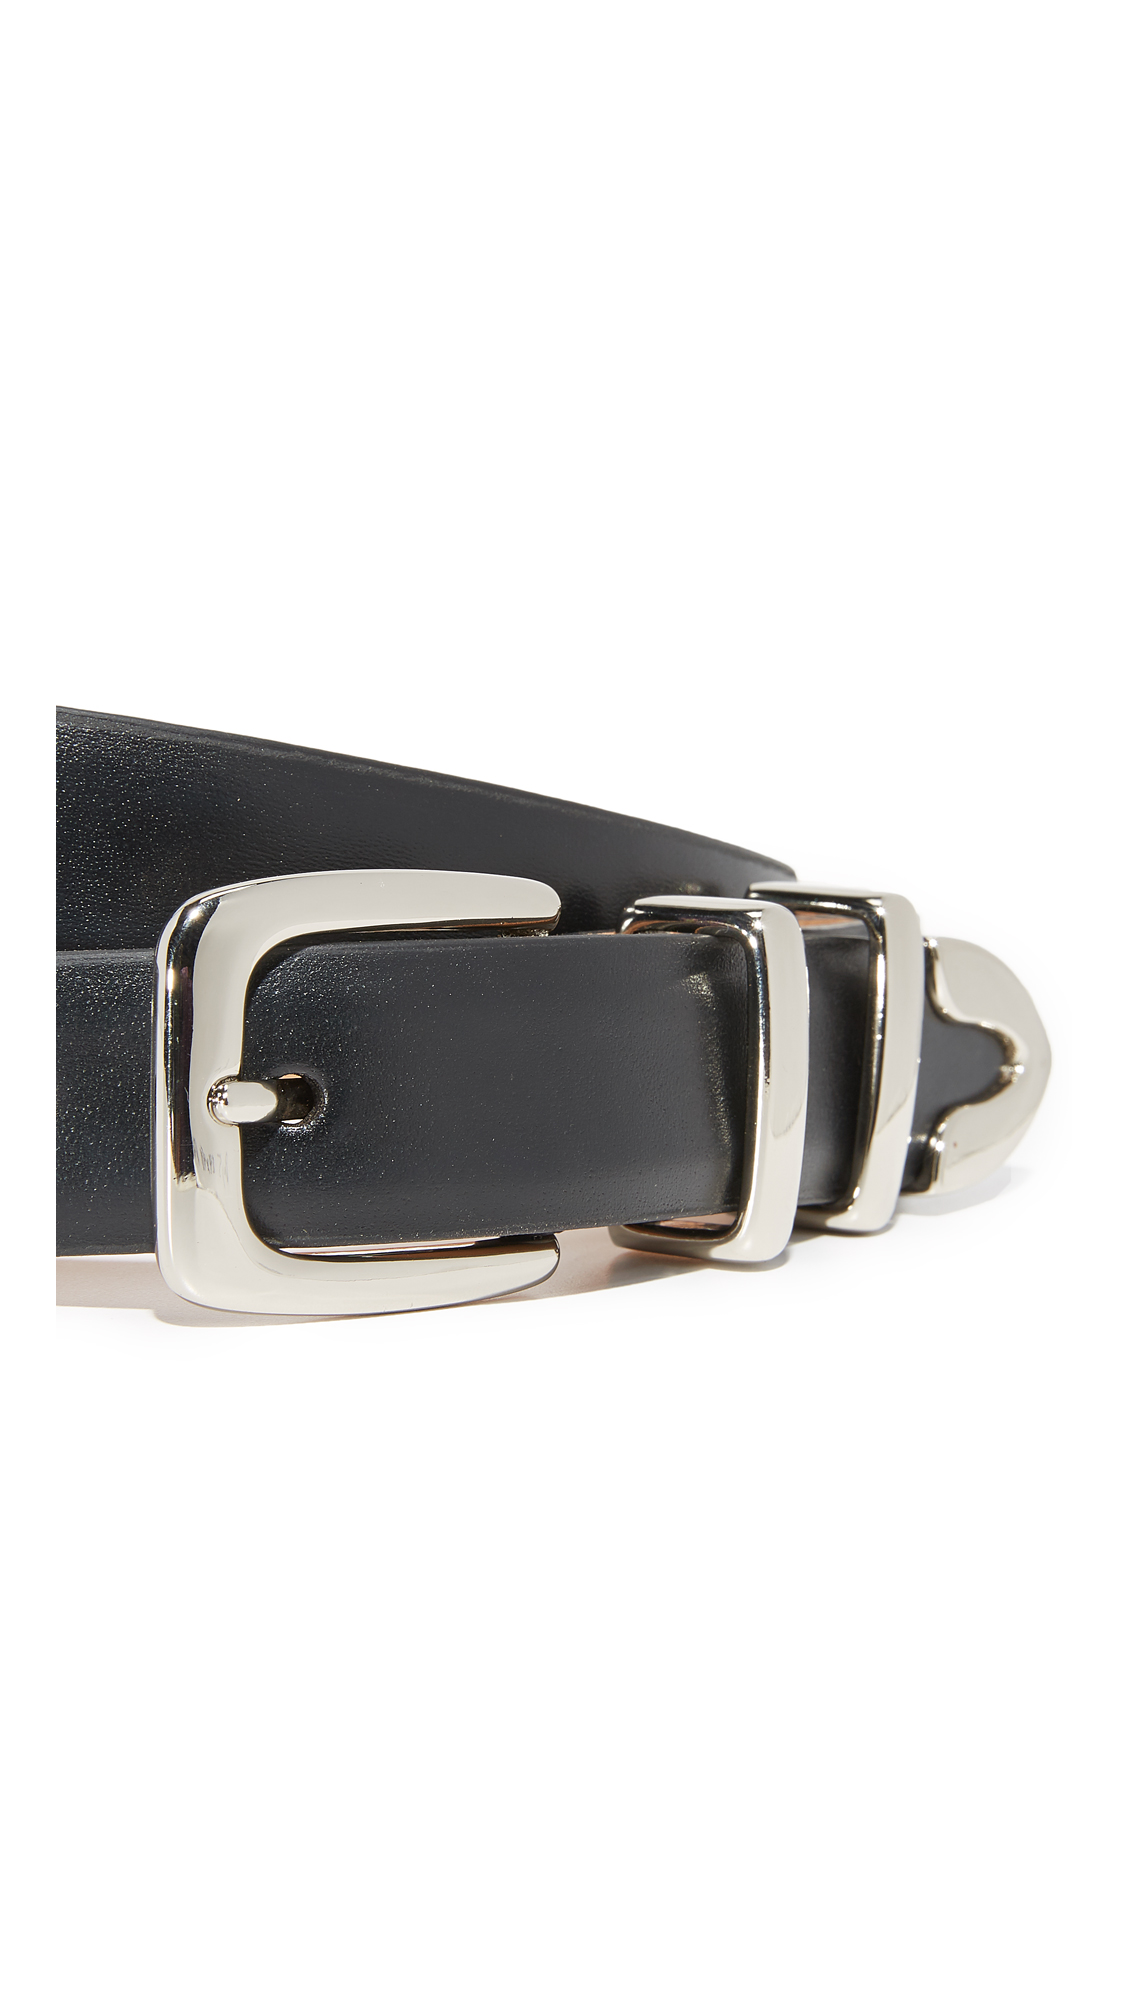 Small Leather Goods - Belts The Kooples ZZoxMd1X